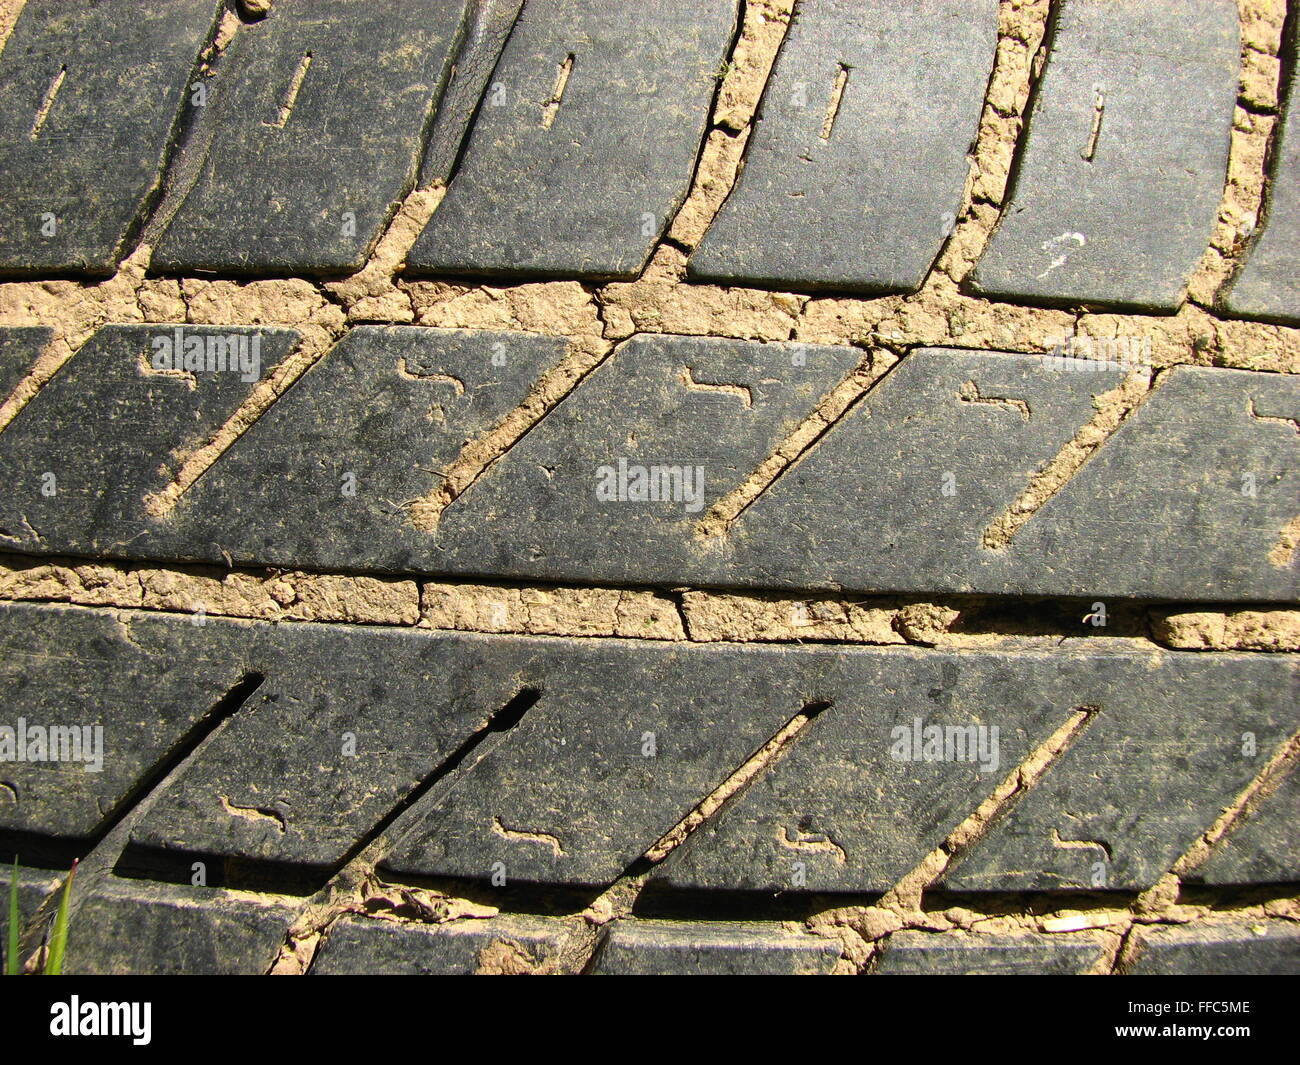 Close-up of a worn and muddy tire profile - Stock Image